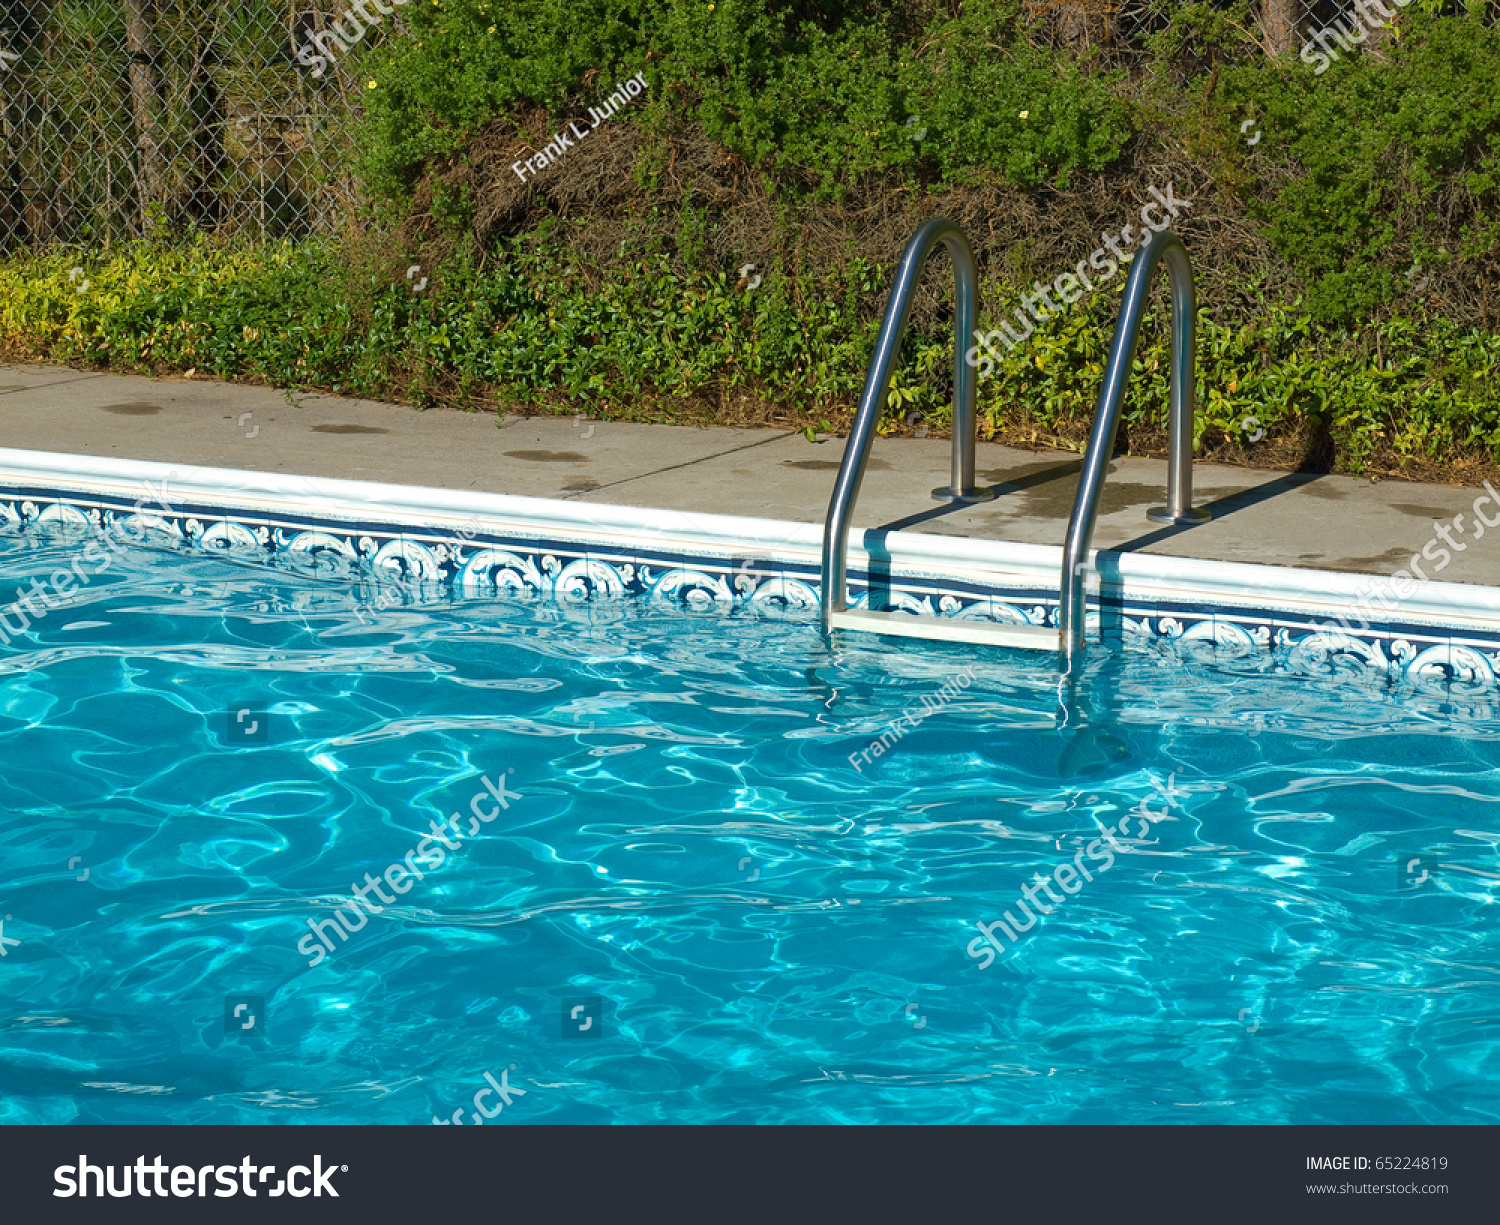 Blue Swimming Pool Water Ladder And Pool Edge In Full Sunlight Stock Photo 65224819 Shutterstock